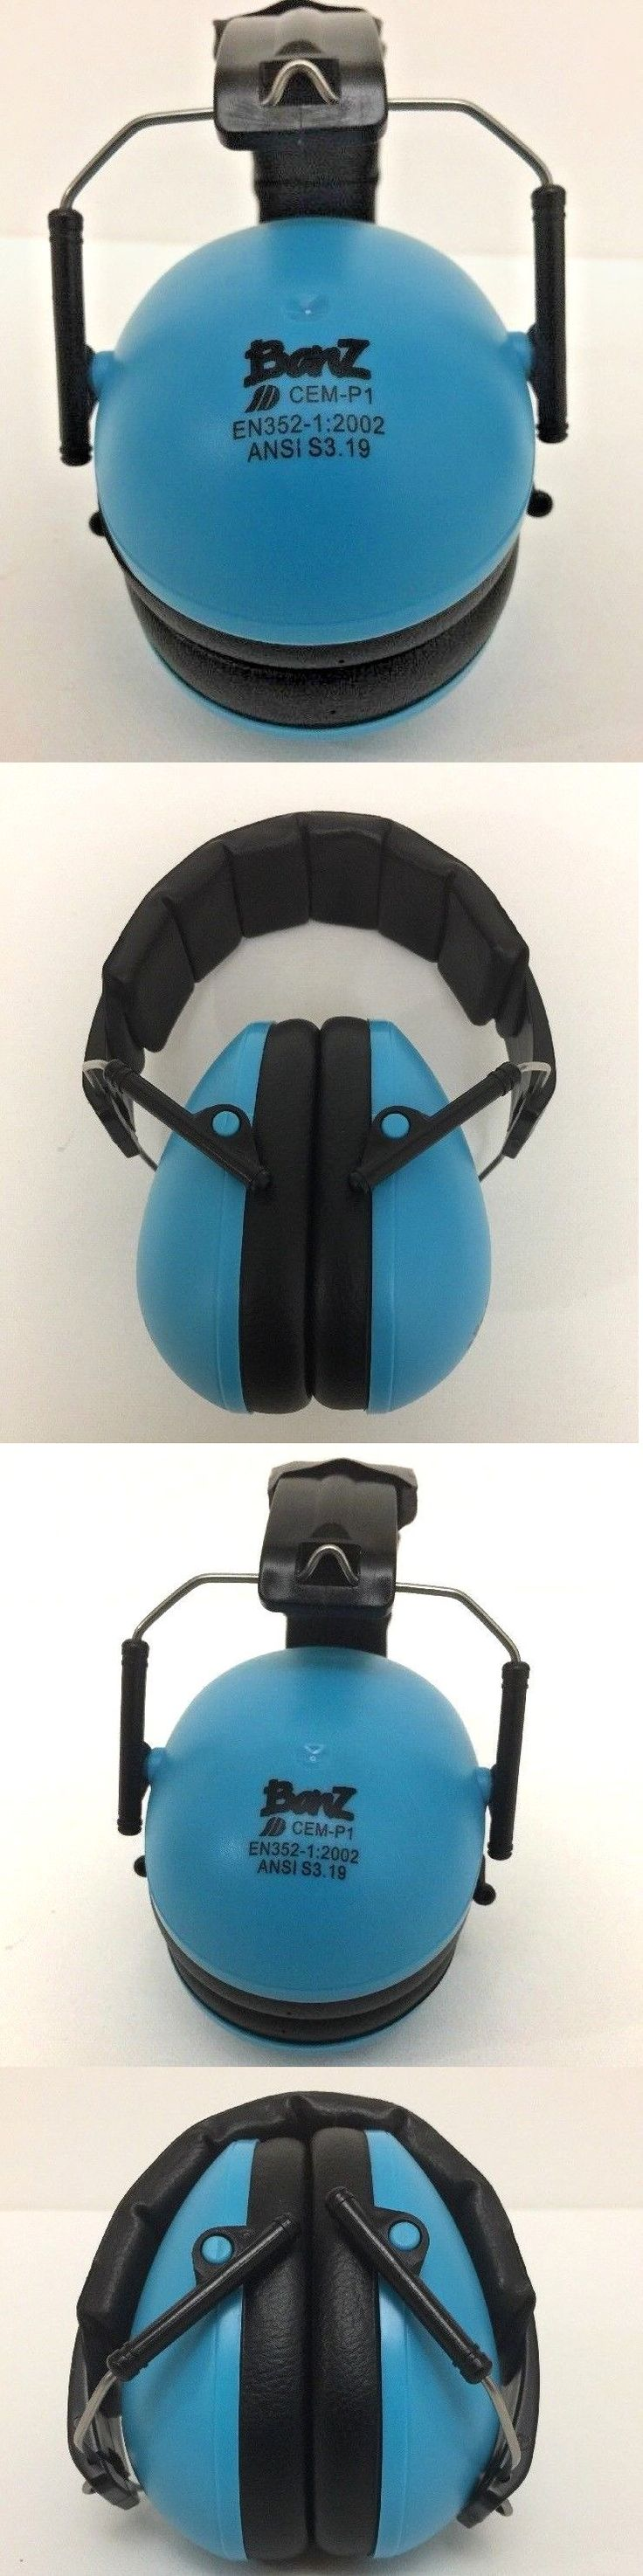 119 Best Noise Cancelling Headphones Images On Pinterest Ems Adjustable Headband Army Camo For Baby Earmuff Hearing Protection Earmuffs 184343 Banz Ear Muffs By Carribean Blue 2